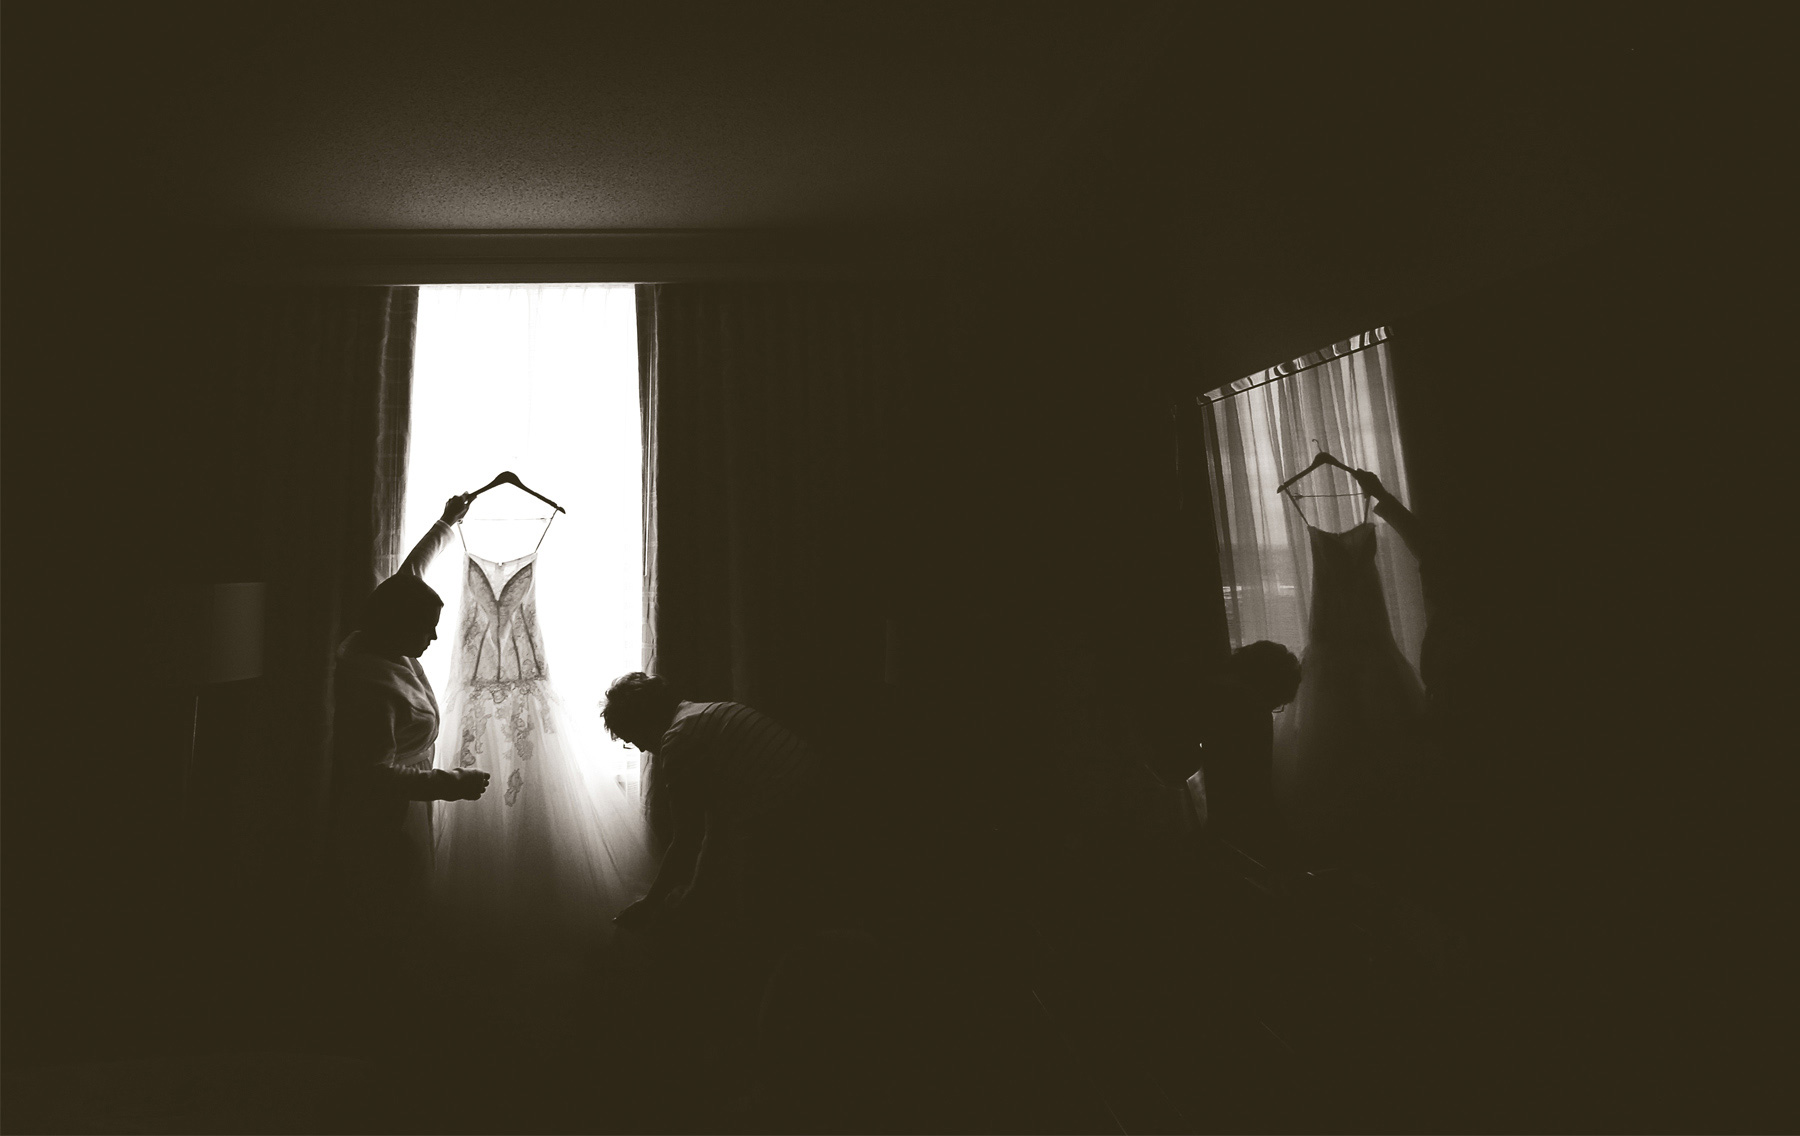 01-Minneapolis-Minnesota-Wedding-Photography-by-Vick-Photography-Downtown-Bride-Dress-Megan-and-Andrew.jpg